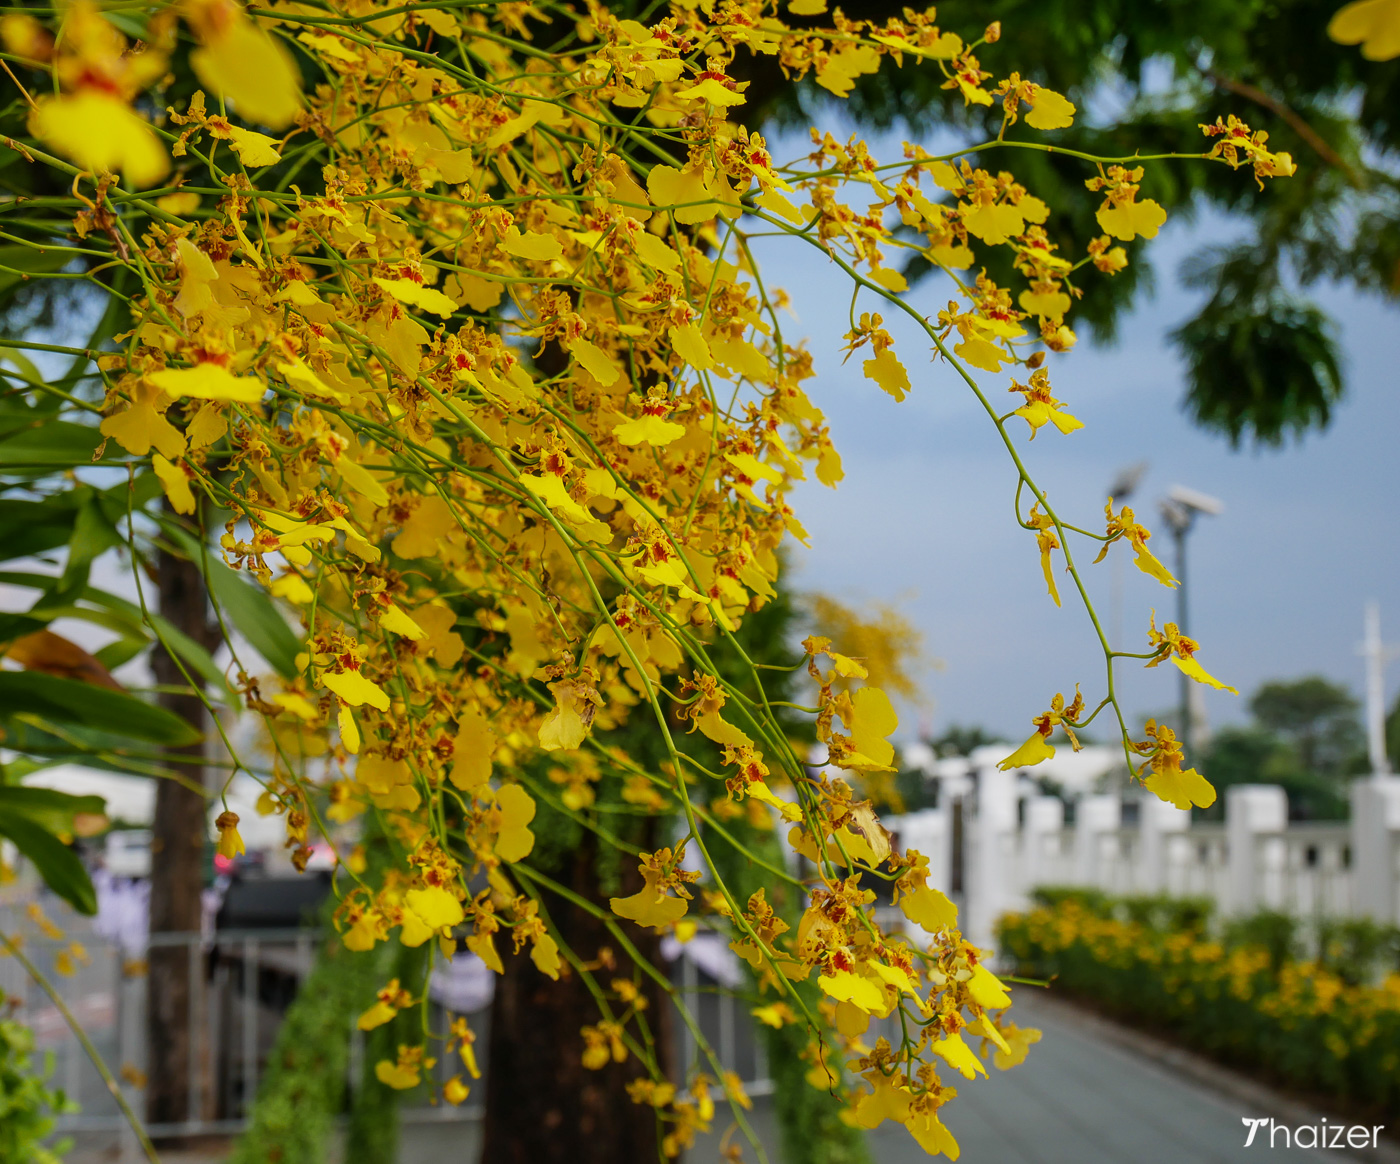 Ratchaphruek, golden shower trees